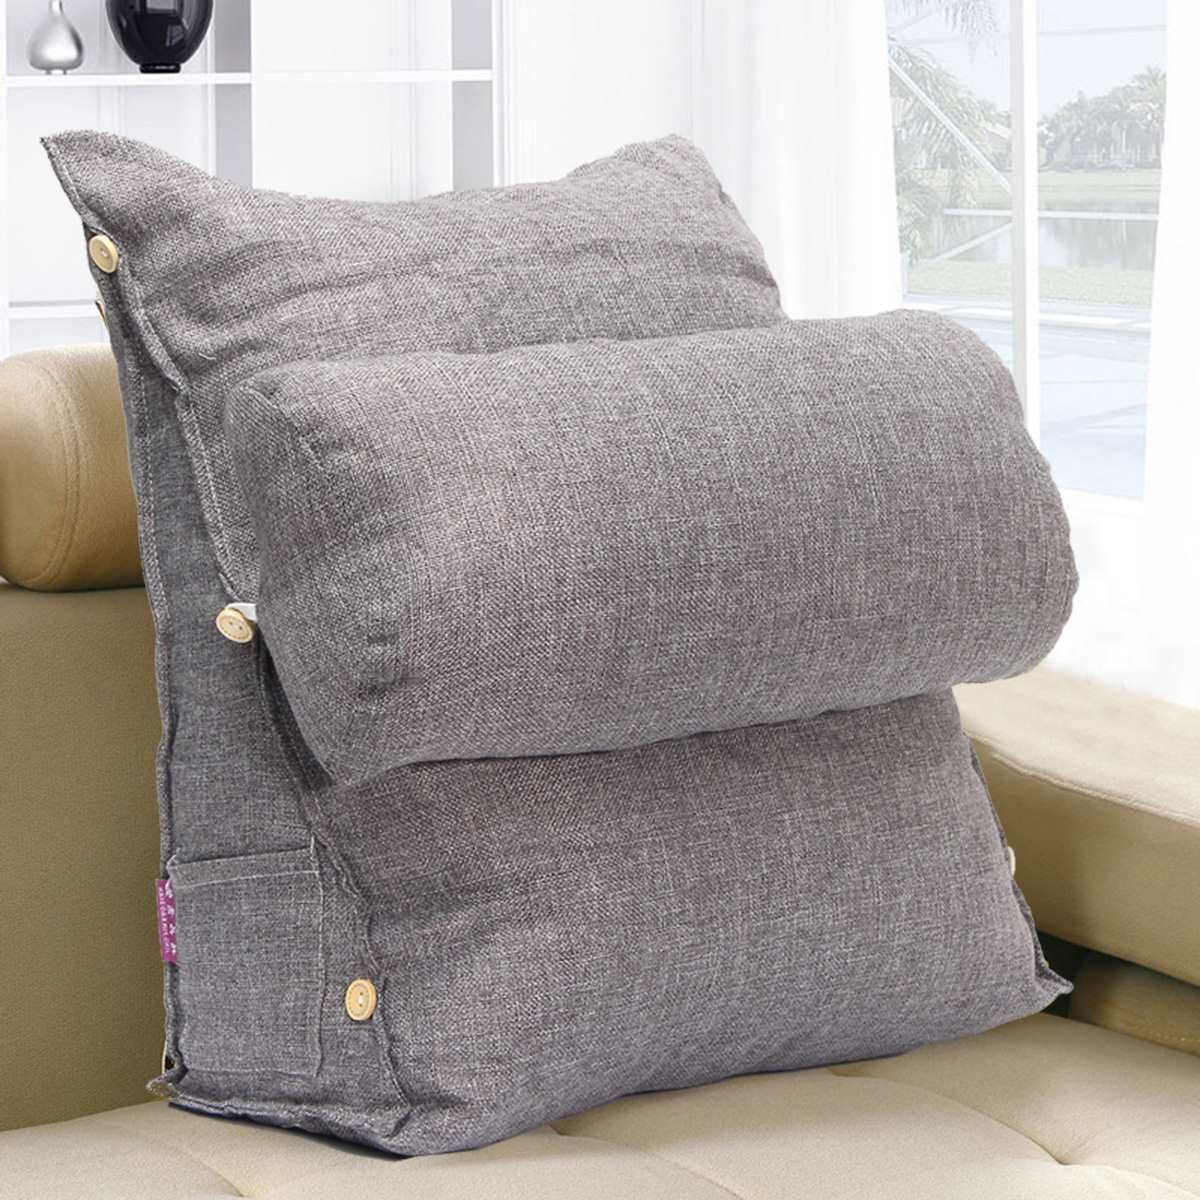 Bed pillow chair - Gray Adjustable Sofa Bed Pillow Chair Rest Neck Support Back Wedge Cushion Fip Pillow Cervical Protection